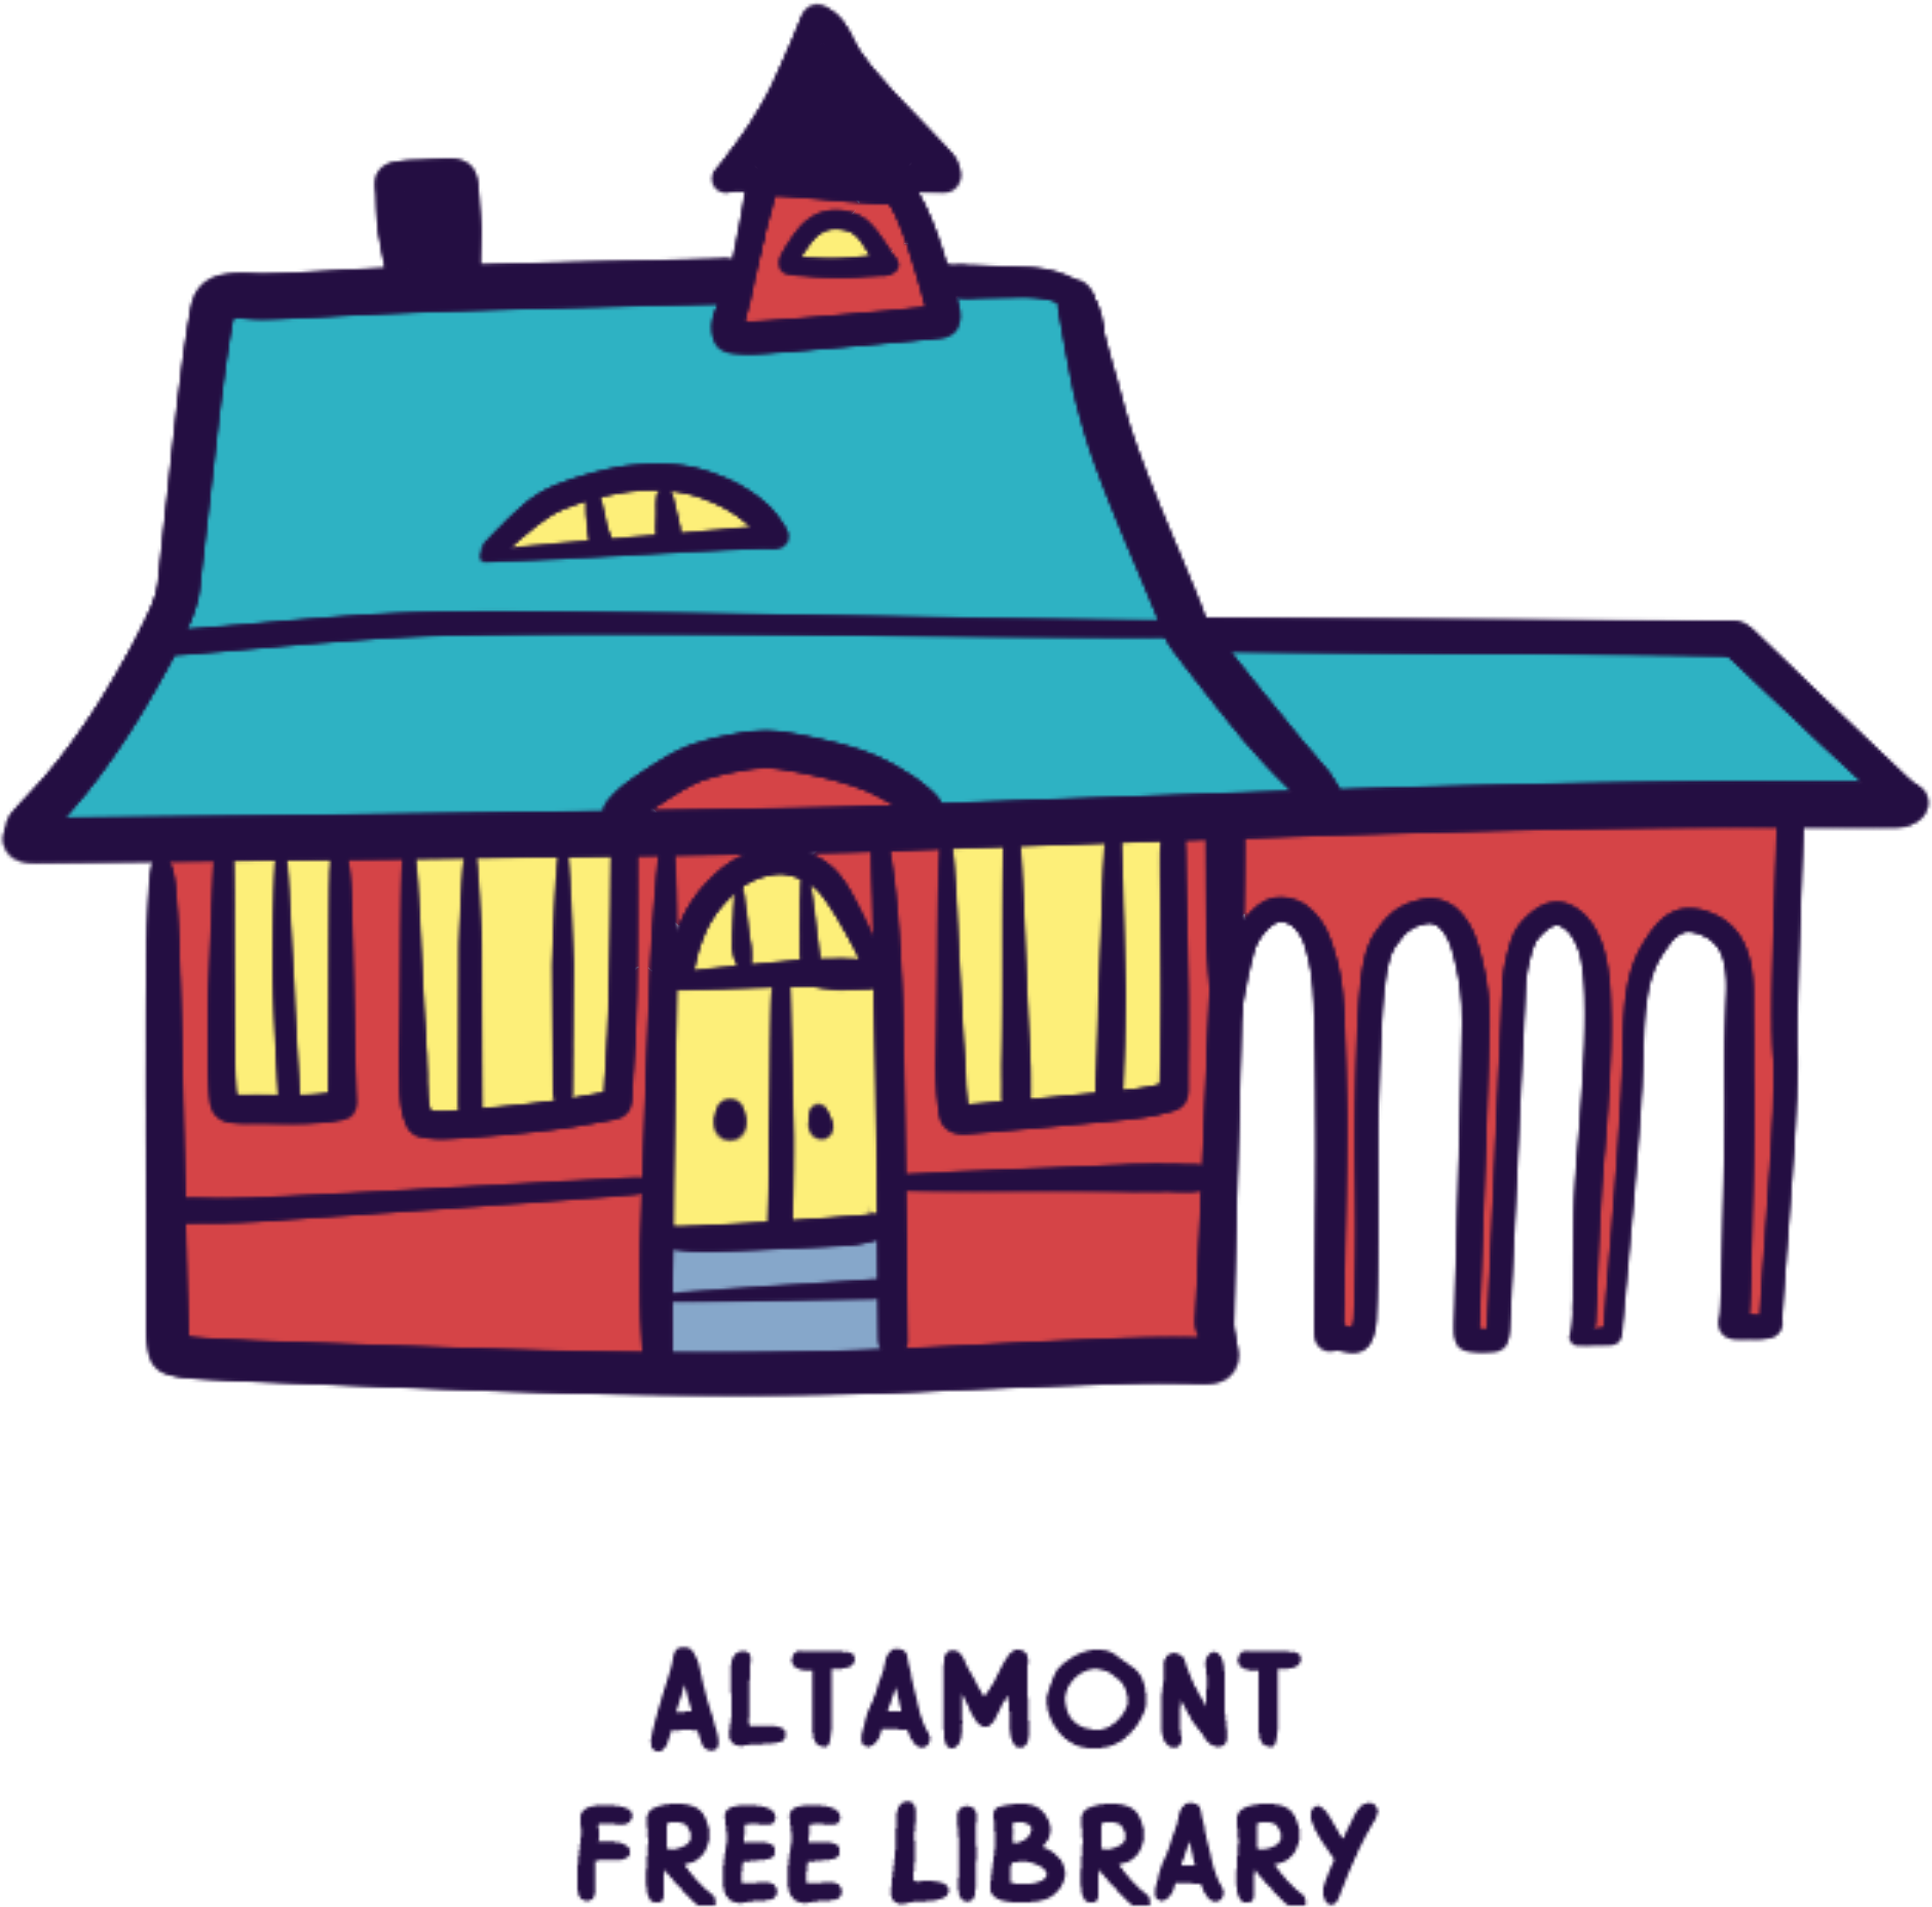 library-icons-_0007_Altamont.png